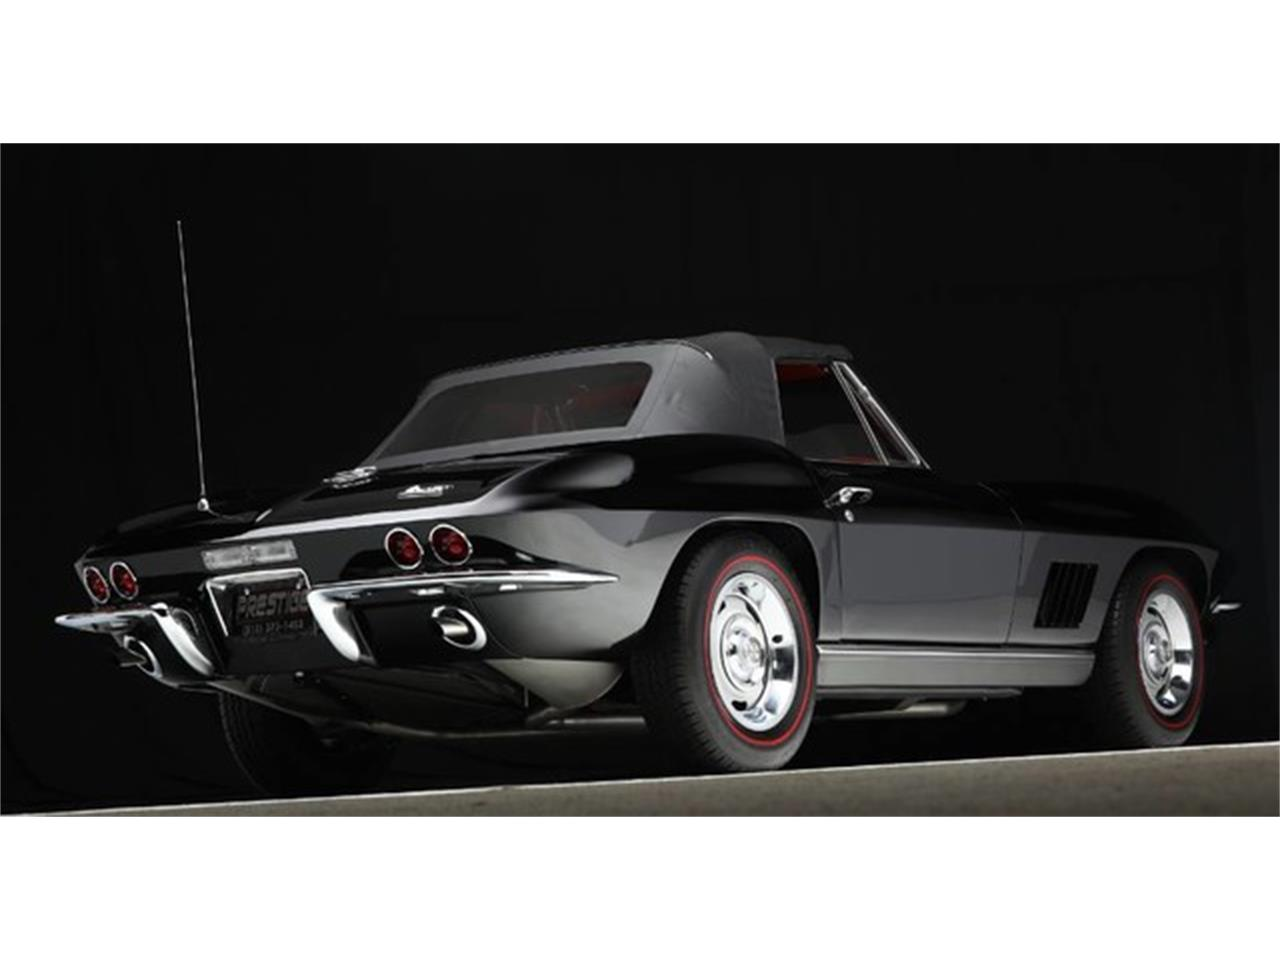 Large Picture of '67 Chevrolet Corvette located in Clifton Park New York Auction Vehicle Offered by Prestige Motor Car Co. - PU42